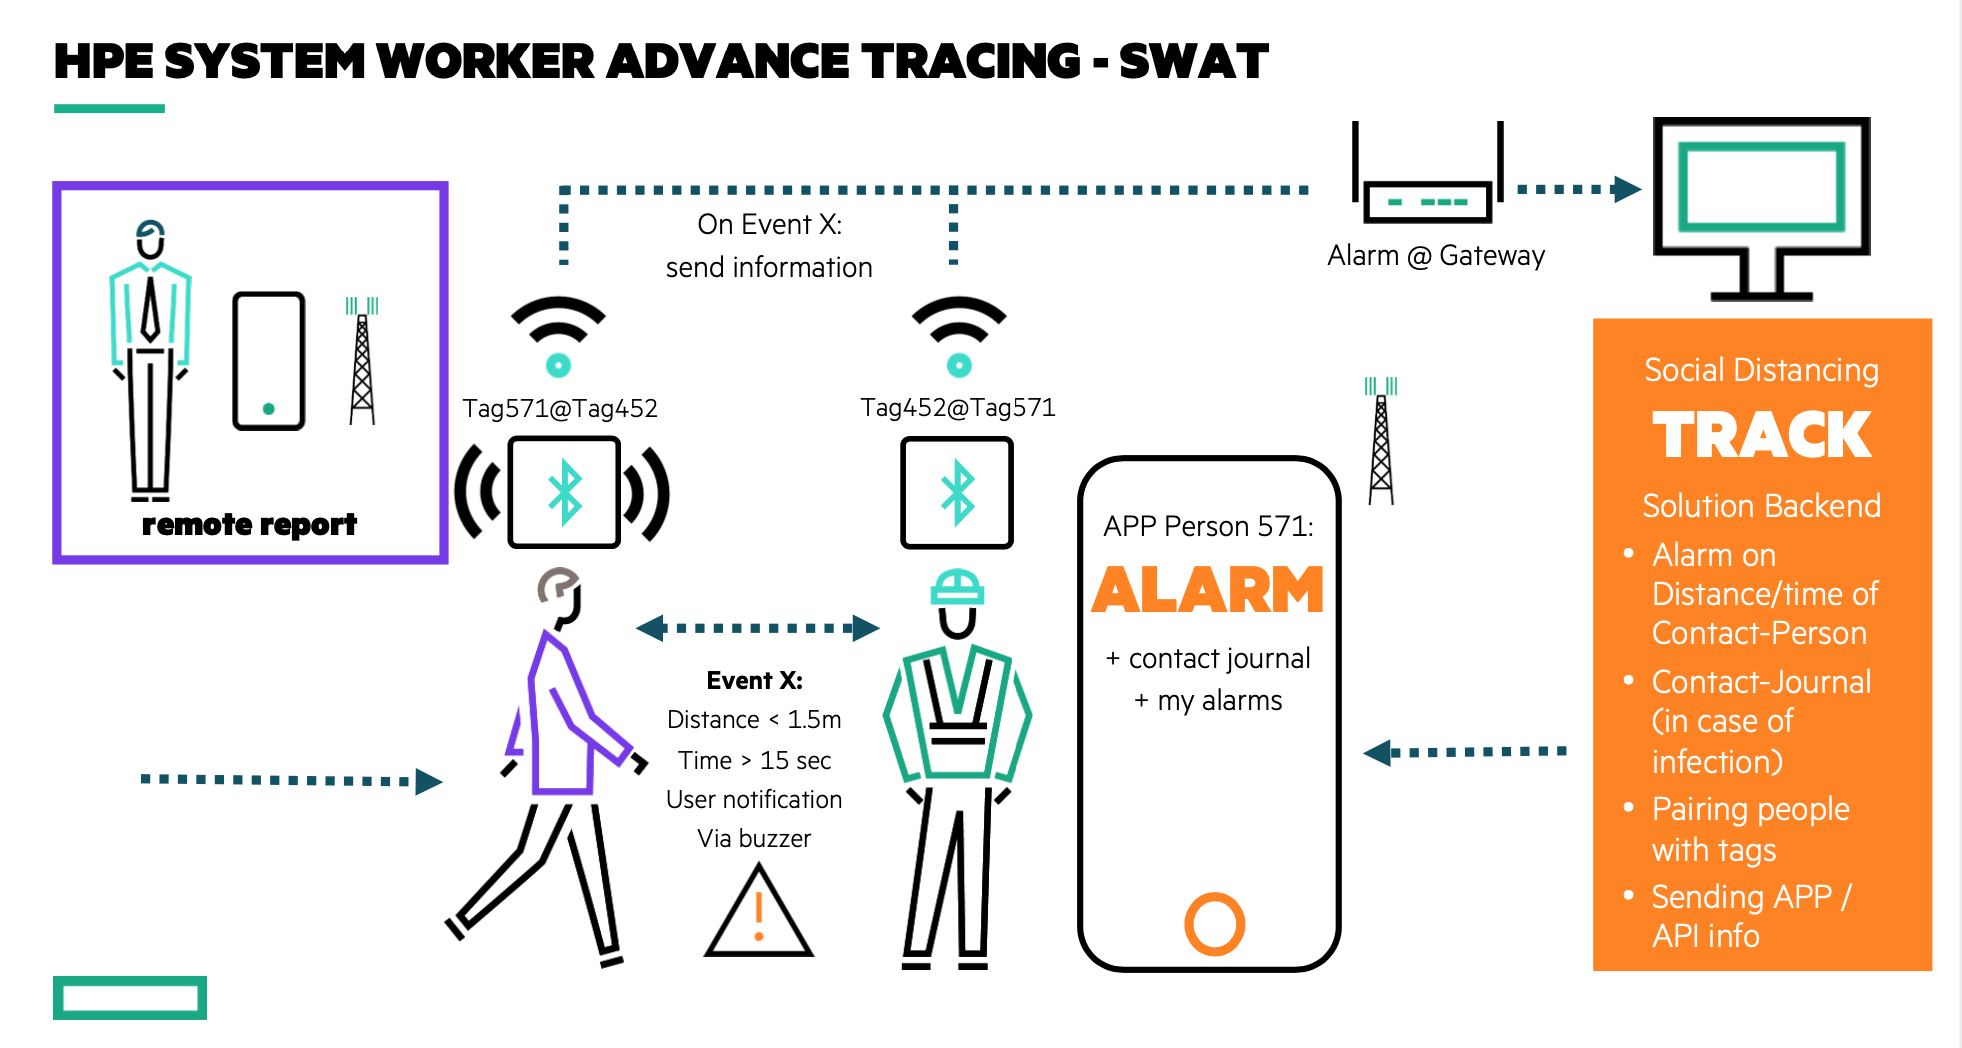 HPE_SWAT_System_Worker_Advance_Tracing